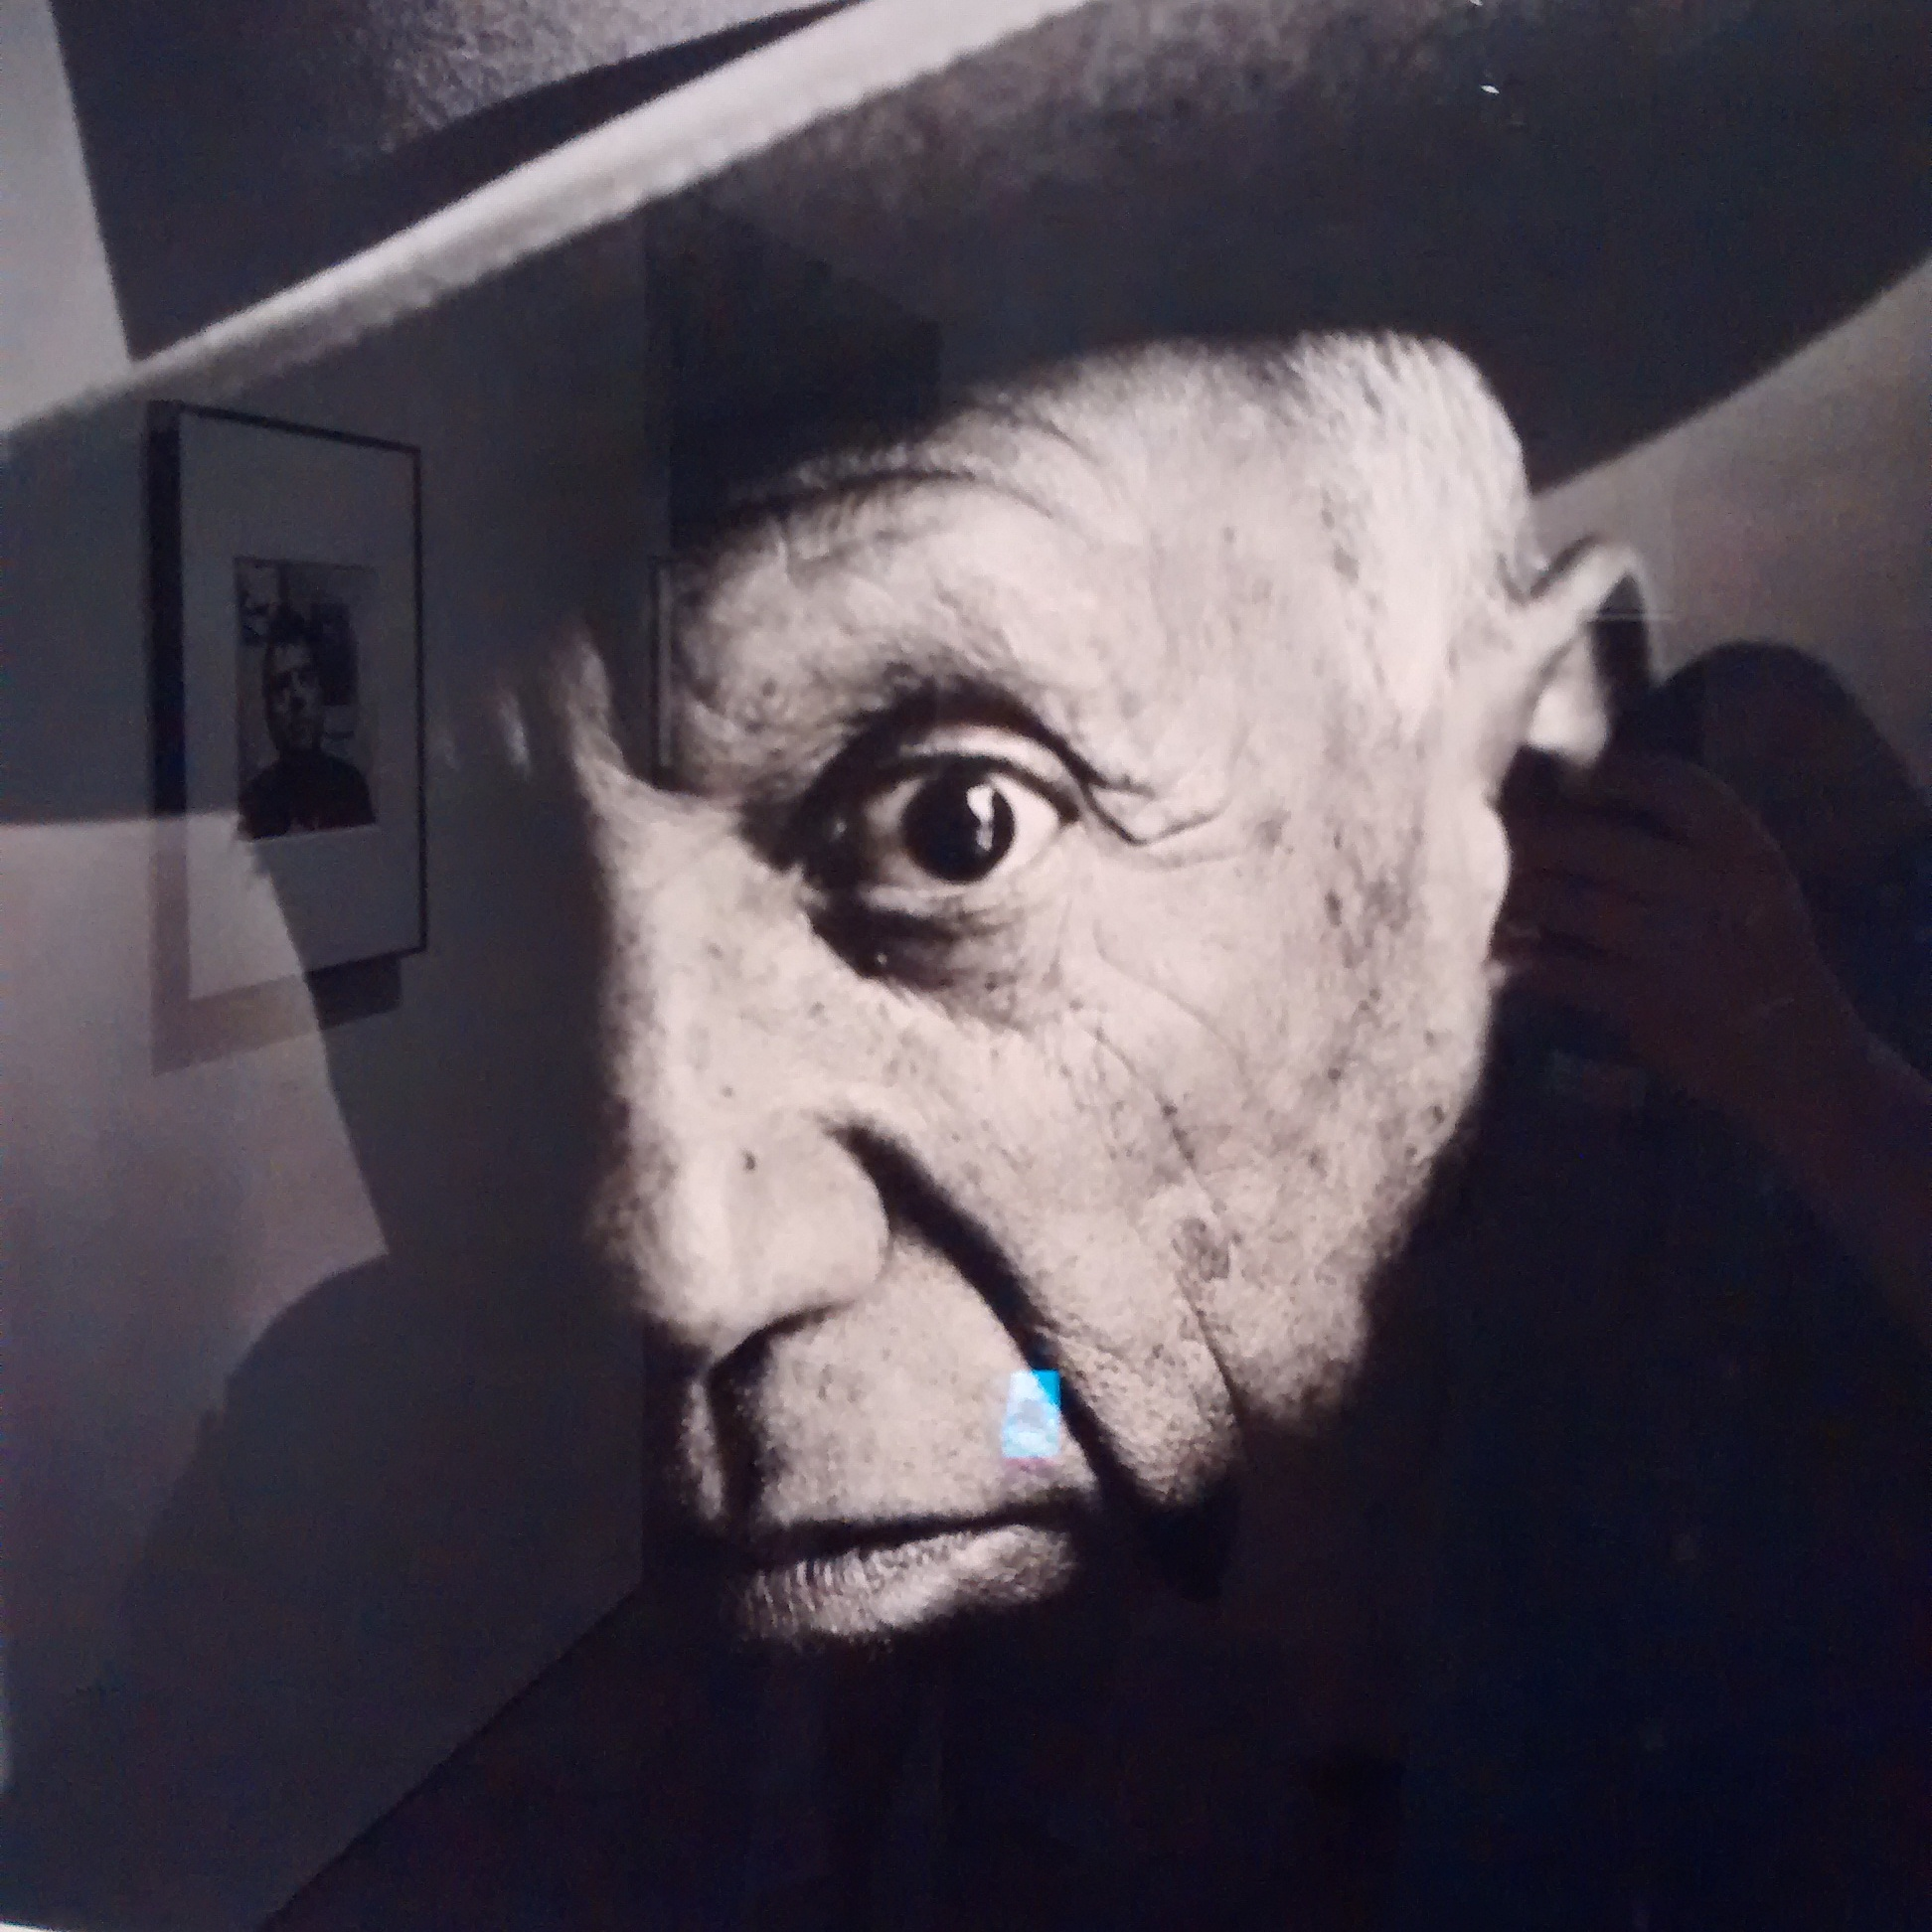 Pablo Picasso was a Spanish painter, sculptor, printmaker, ceramicist, stage designer, poet and playwright who spent most of his adult life in France.